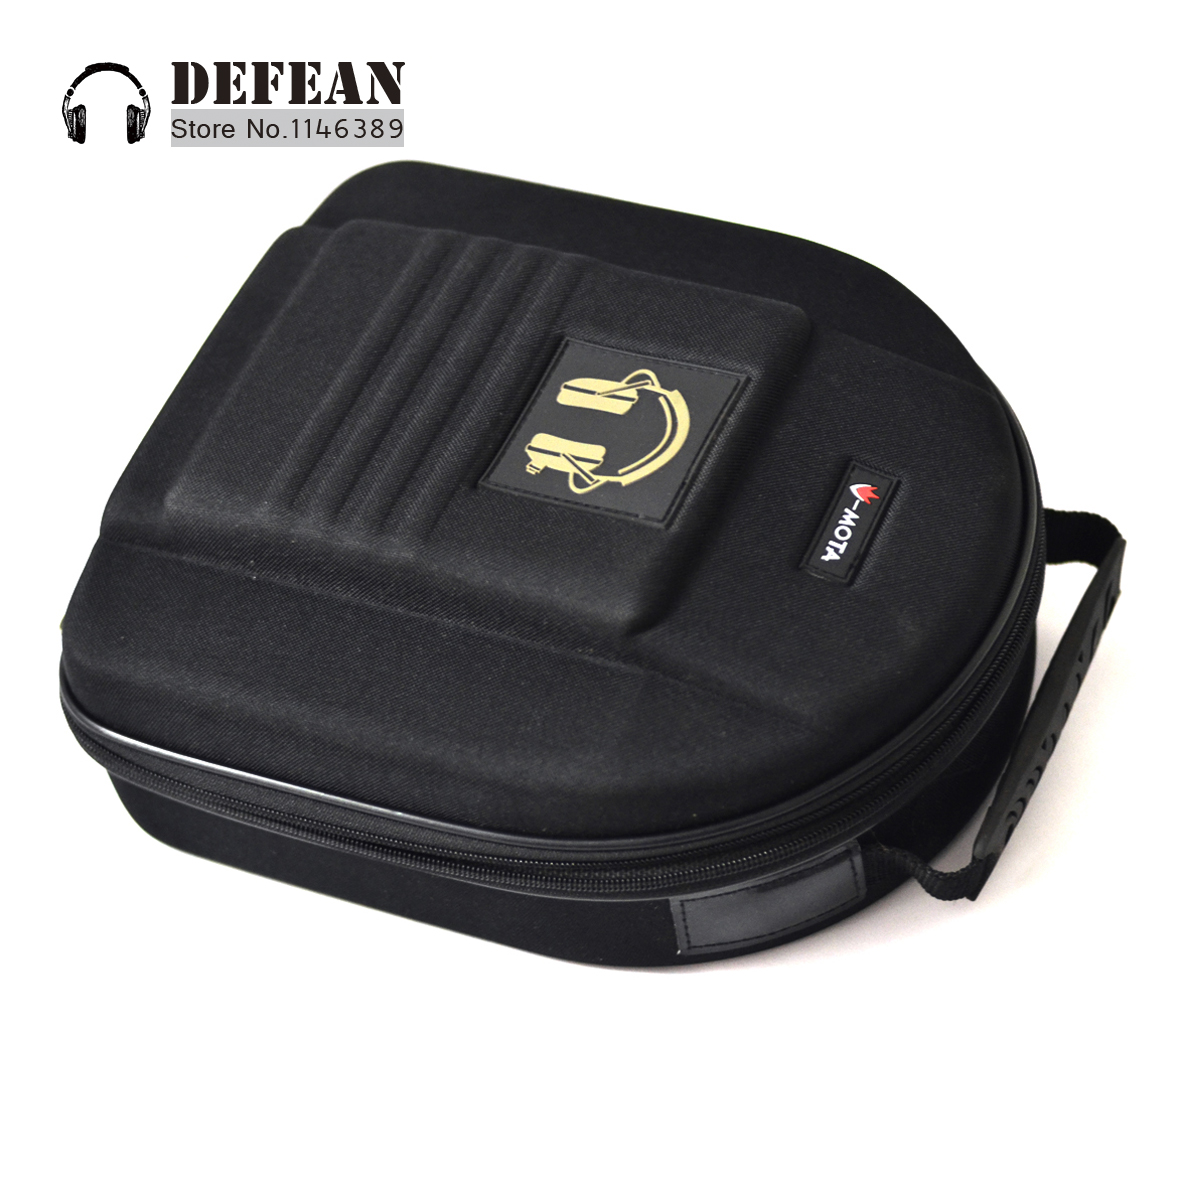 portable hard storage carrying headphone bag box Case For HIFIMAN HE300 HE400 HE400i HE500 HE560 HE 4 6 5 5LE headset